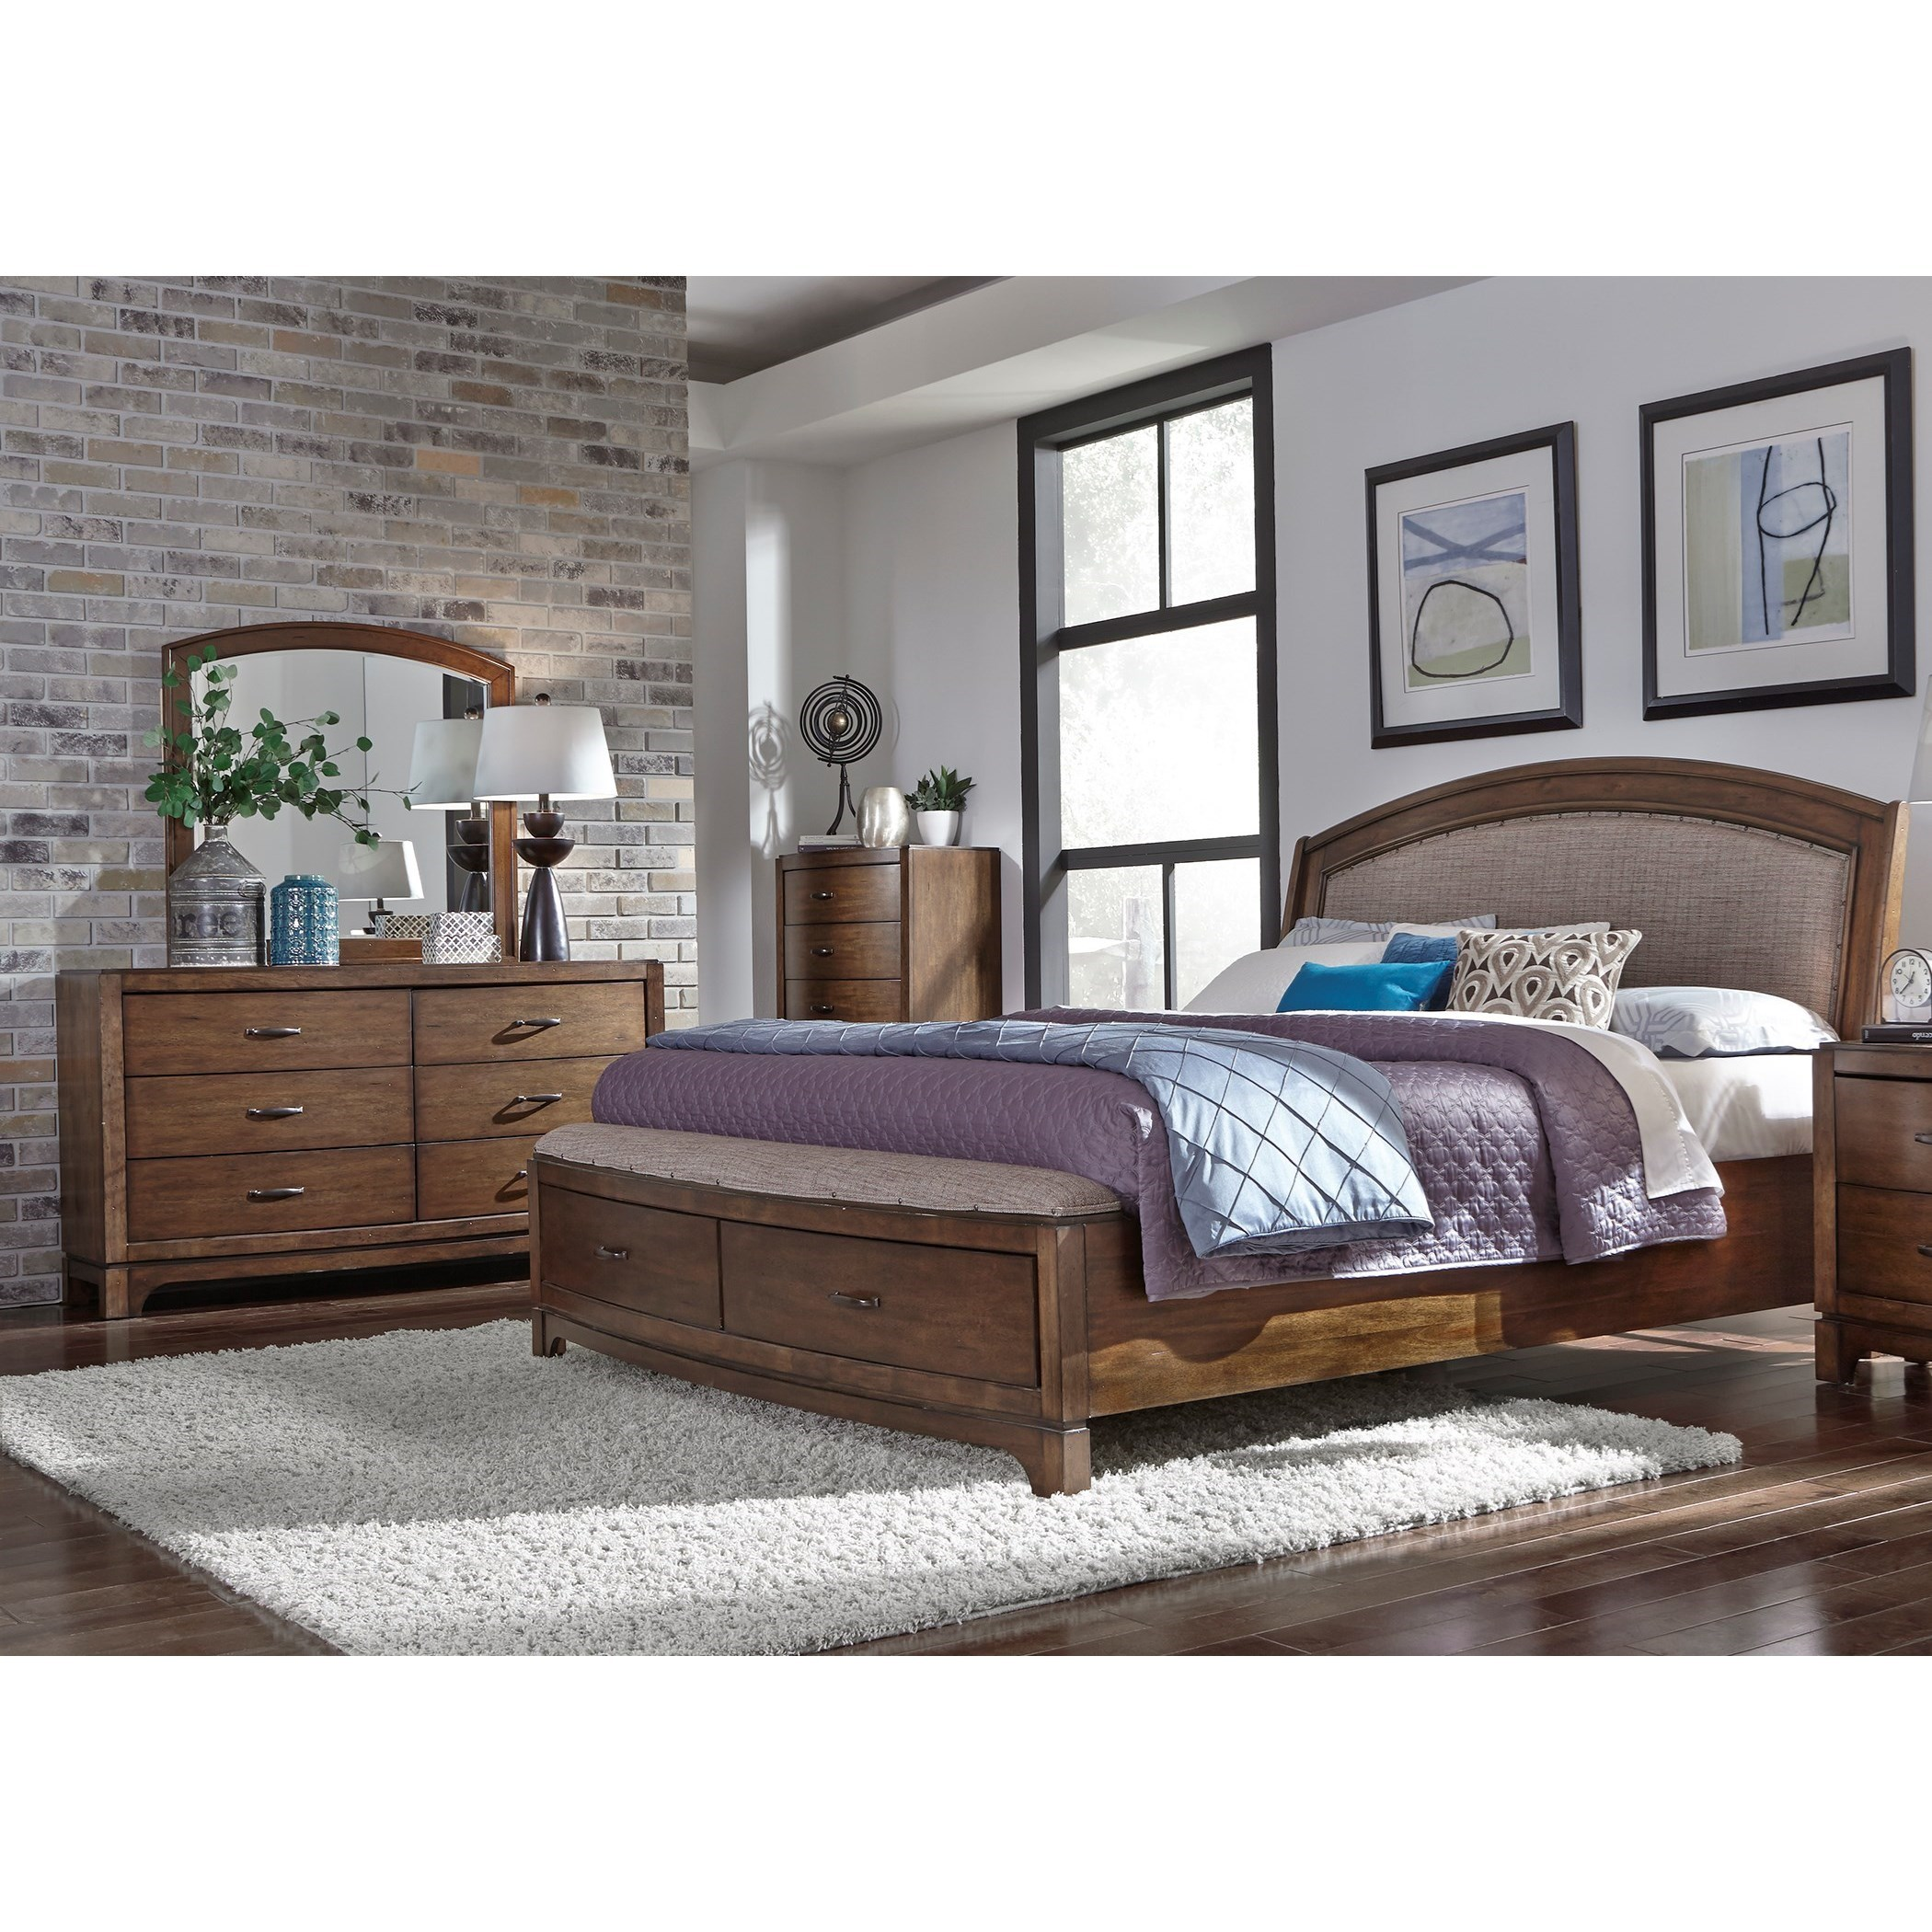 Avalon III Queen Bedroom Group by Liberty Furniture at Standard Furniture